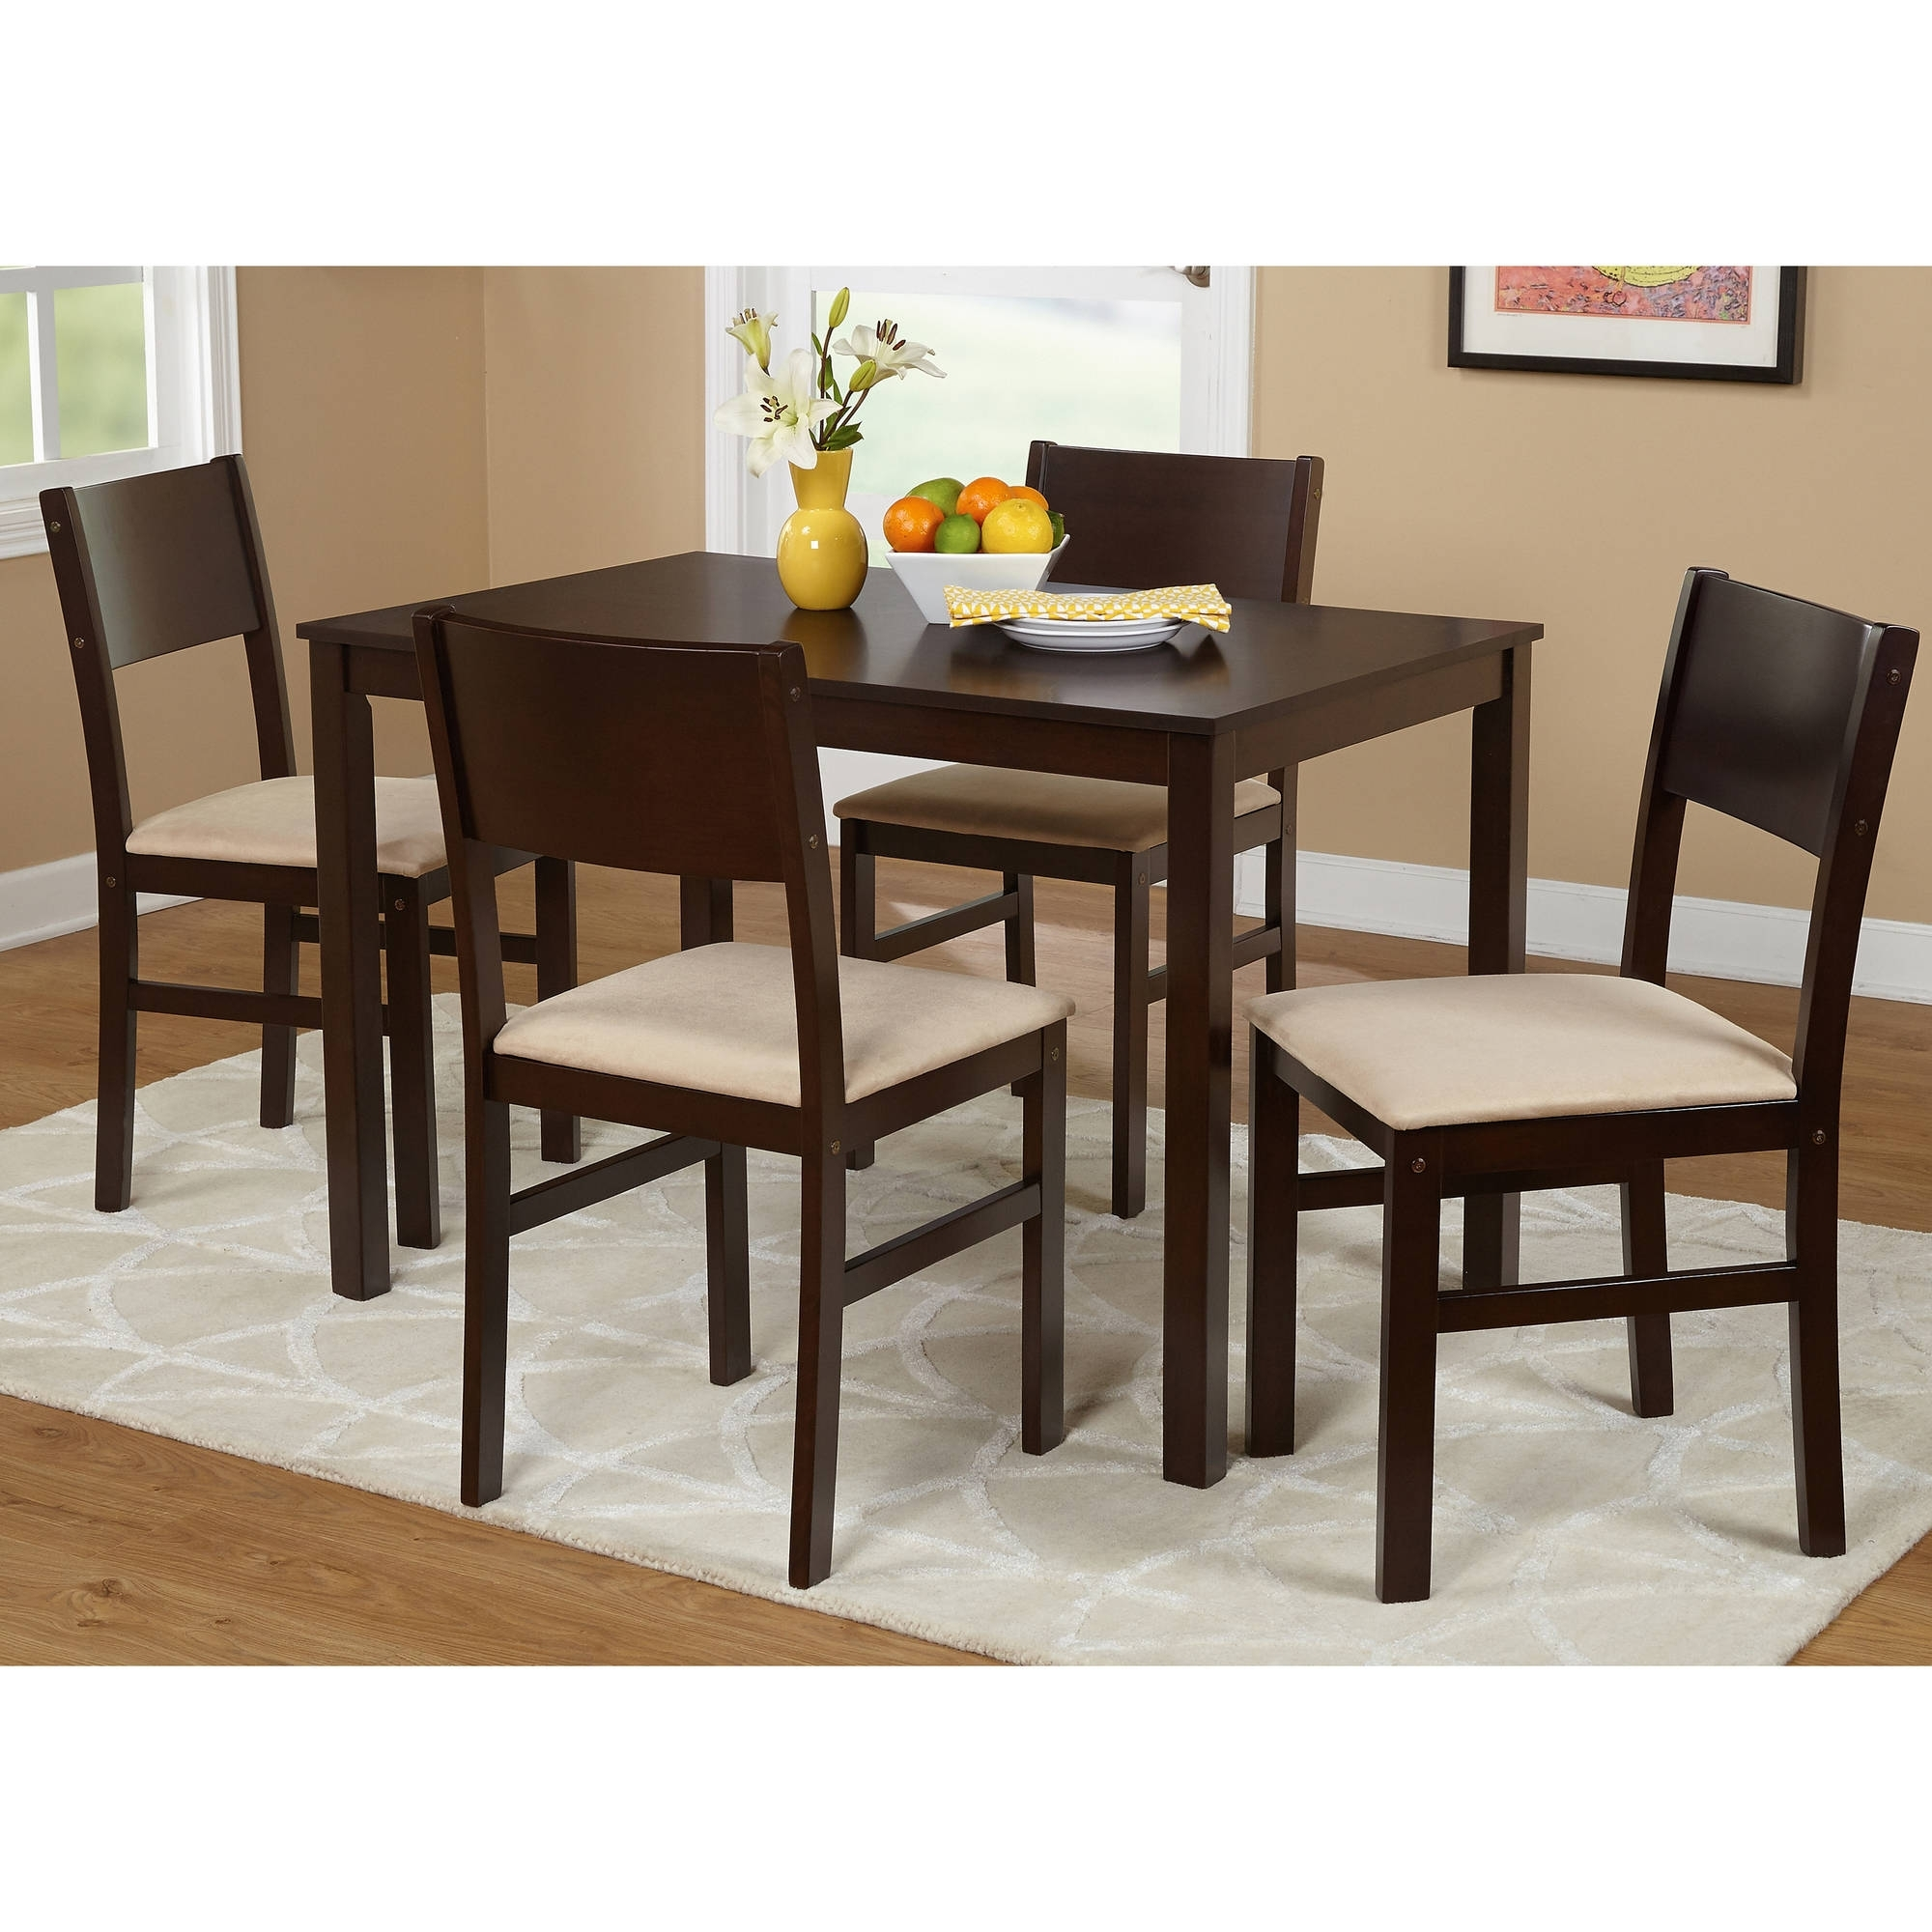 Well Known Lucca 5 Piece Dining Set, Multiple Colors – Walmart Regarding Dining Sets (View 22 of 25)